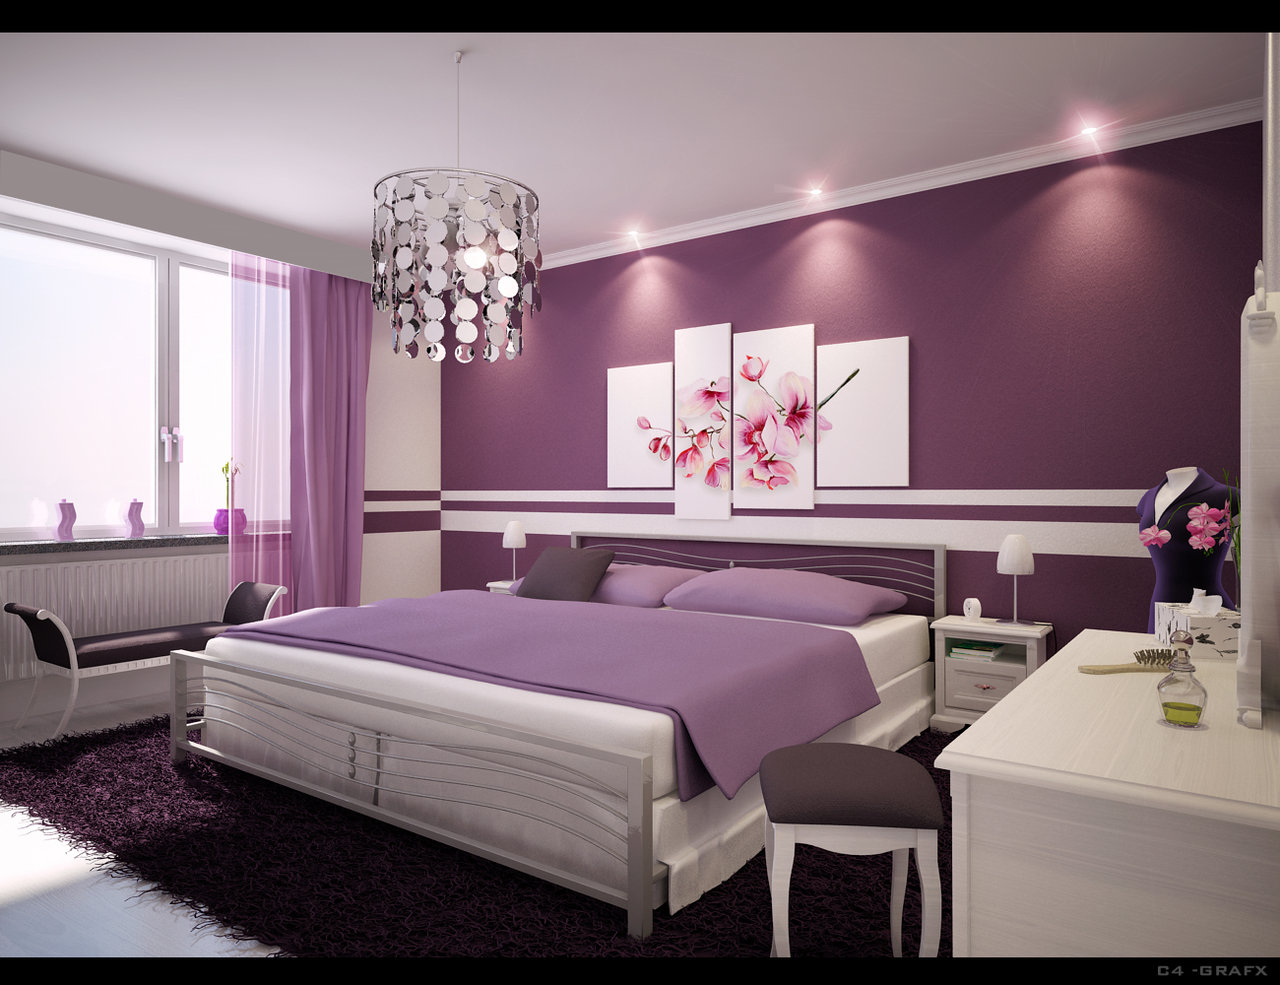 Interior Design For Bedroom New Dream House Experience 2016 Bedroom Interior Design Ideas